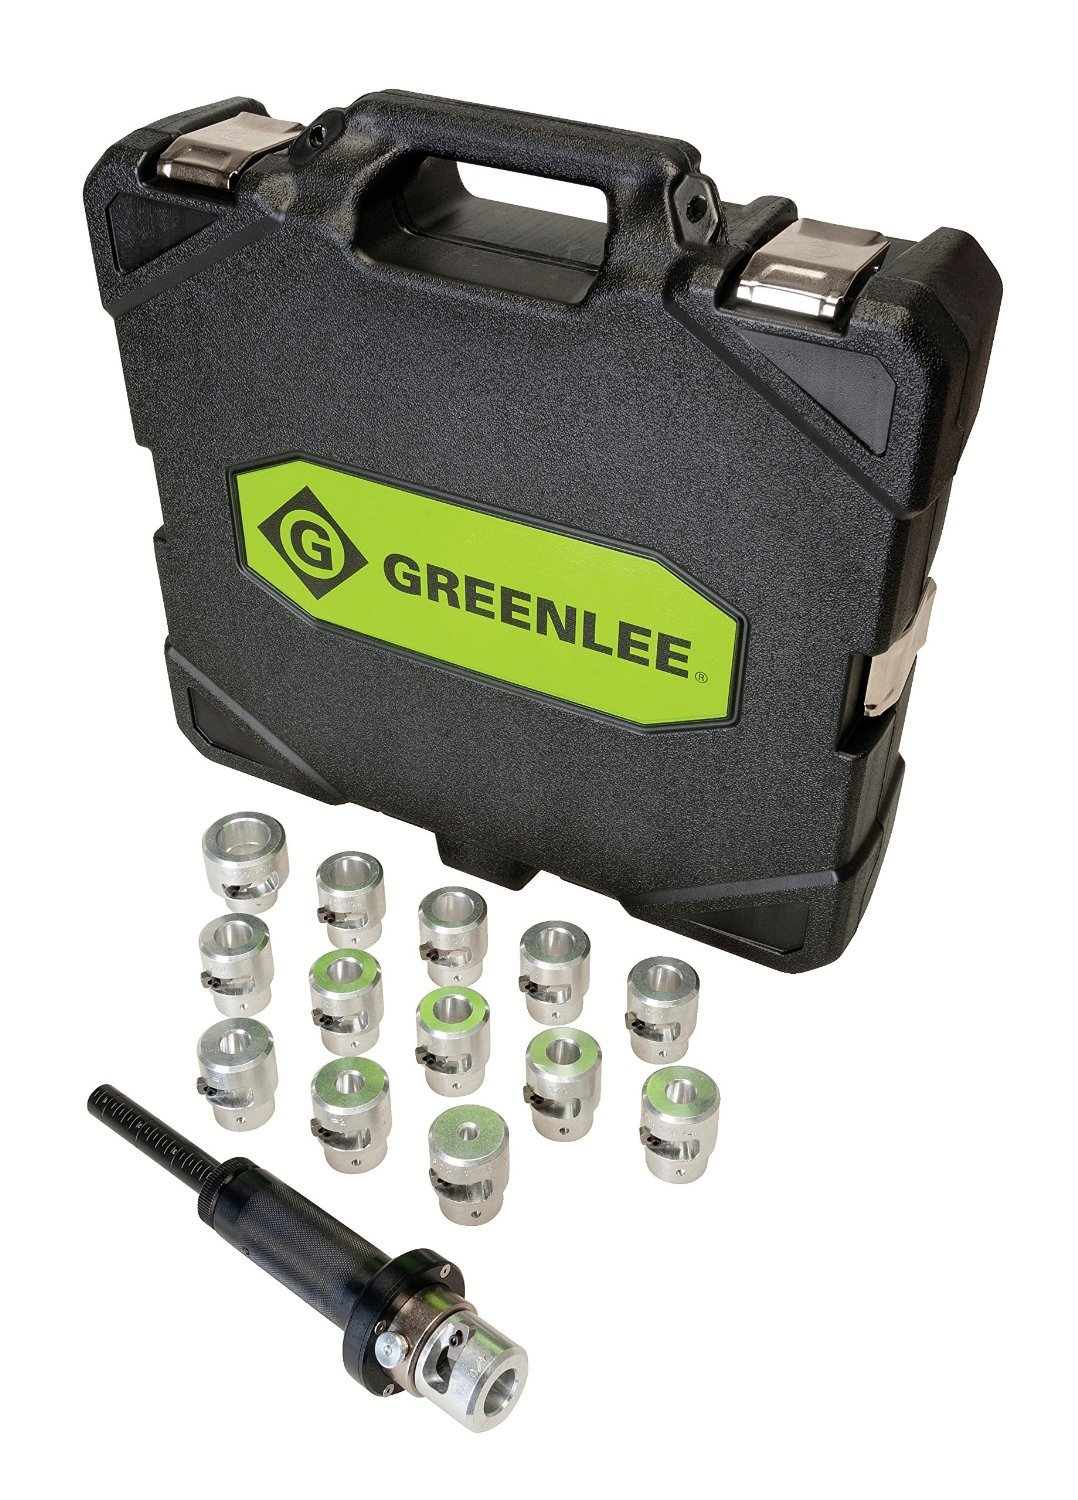 Greenlee GTS-THHN Copper Bushing Kit for the GTS-1930 Saber Cable Stripper